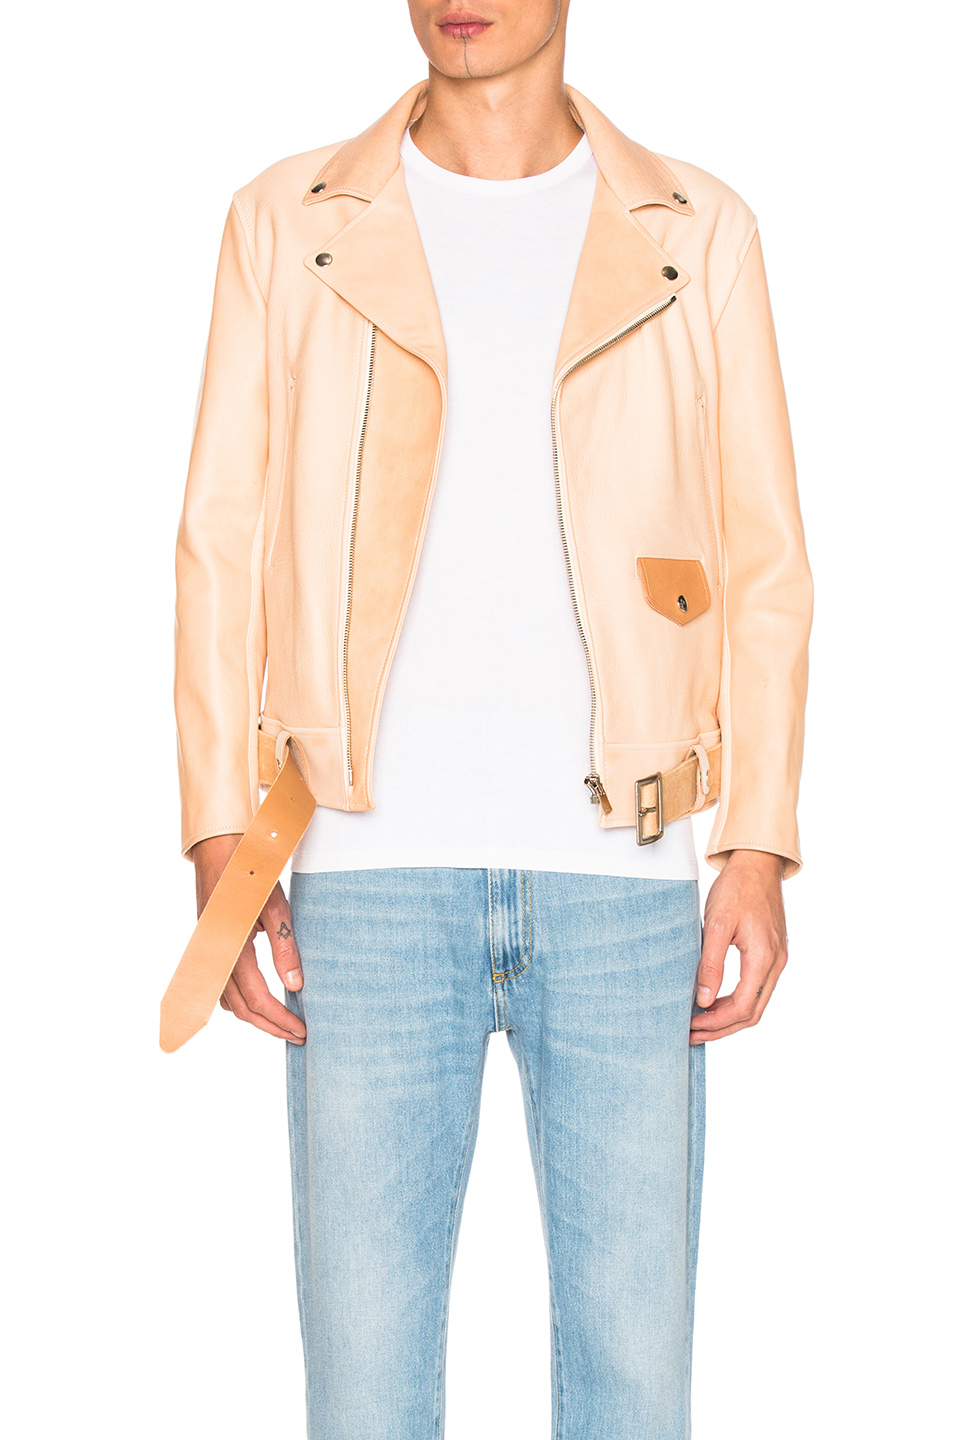 Hender Scheme Leather Jacket in Neutrals